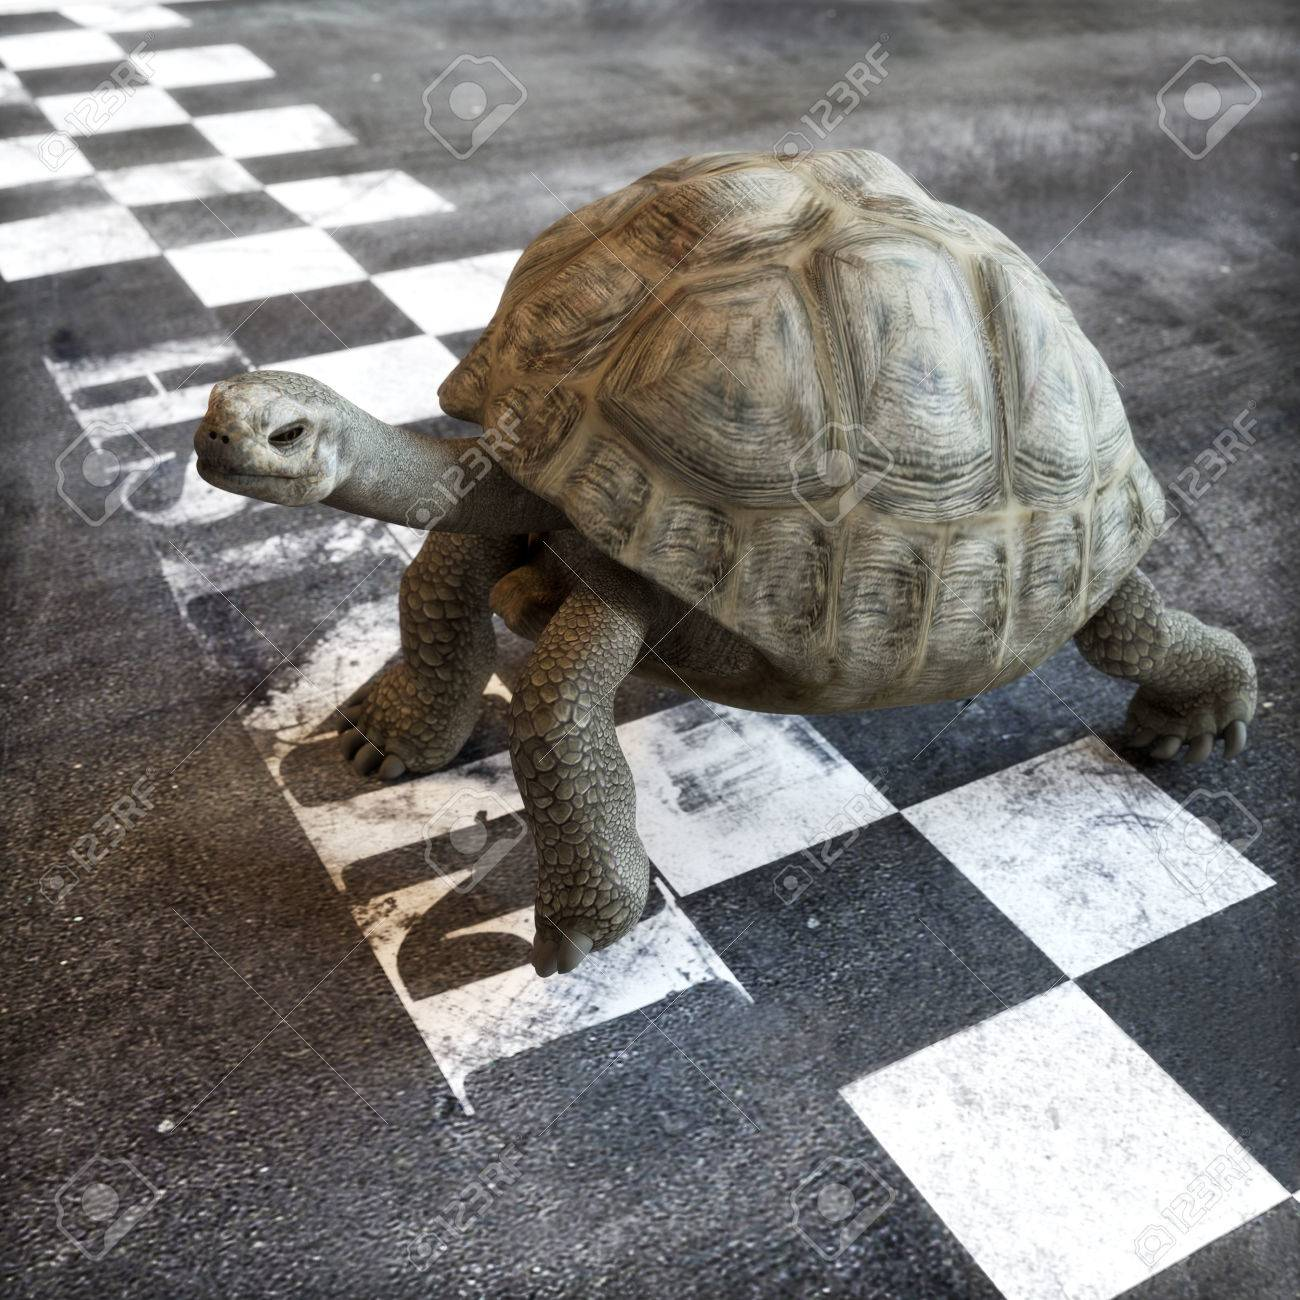 Slow Turtle Crossing >> Slow And Steady Wins The Race A Turtle Crossing The Finish Line